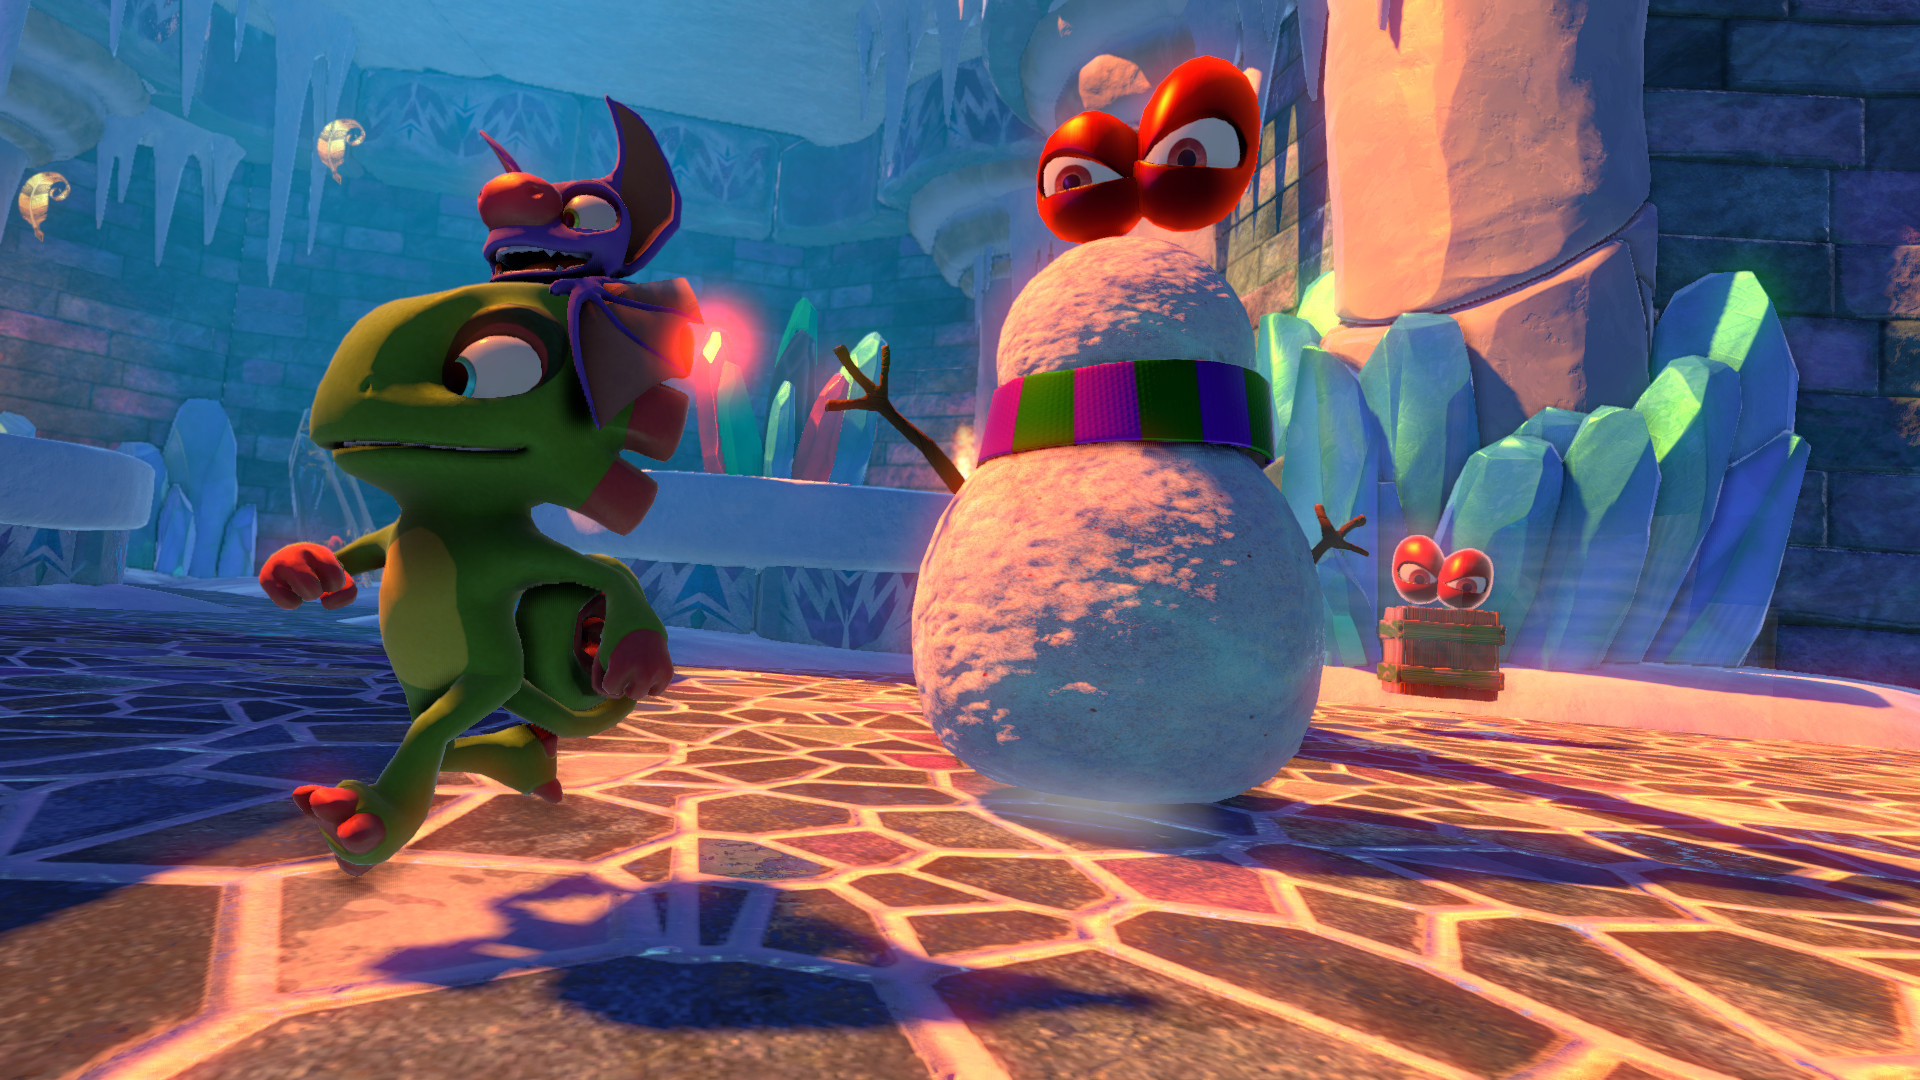 Based on Yooka-Laylee's Trophy list, there will be plenty of